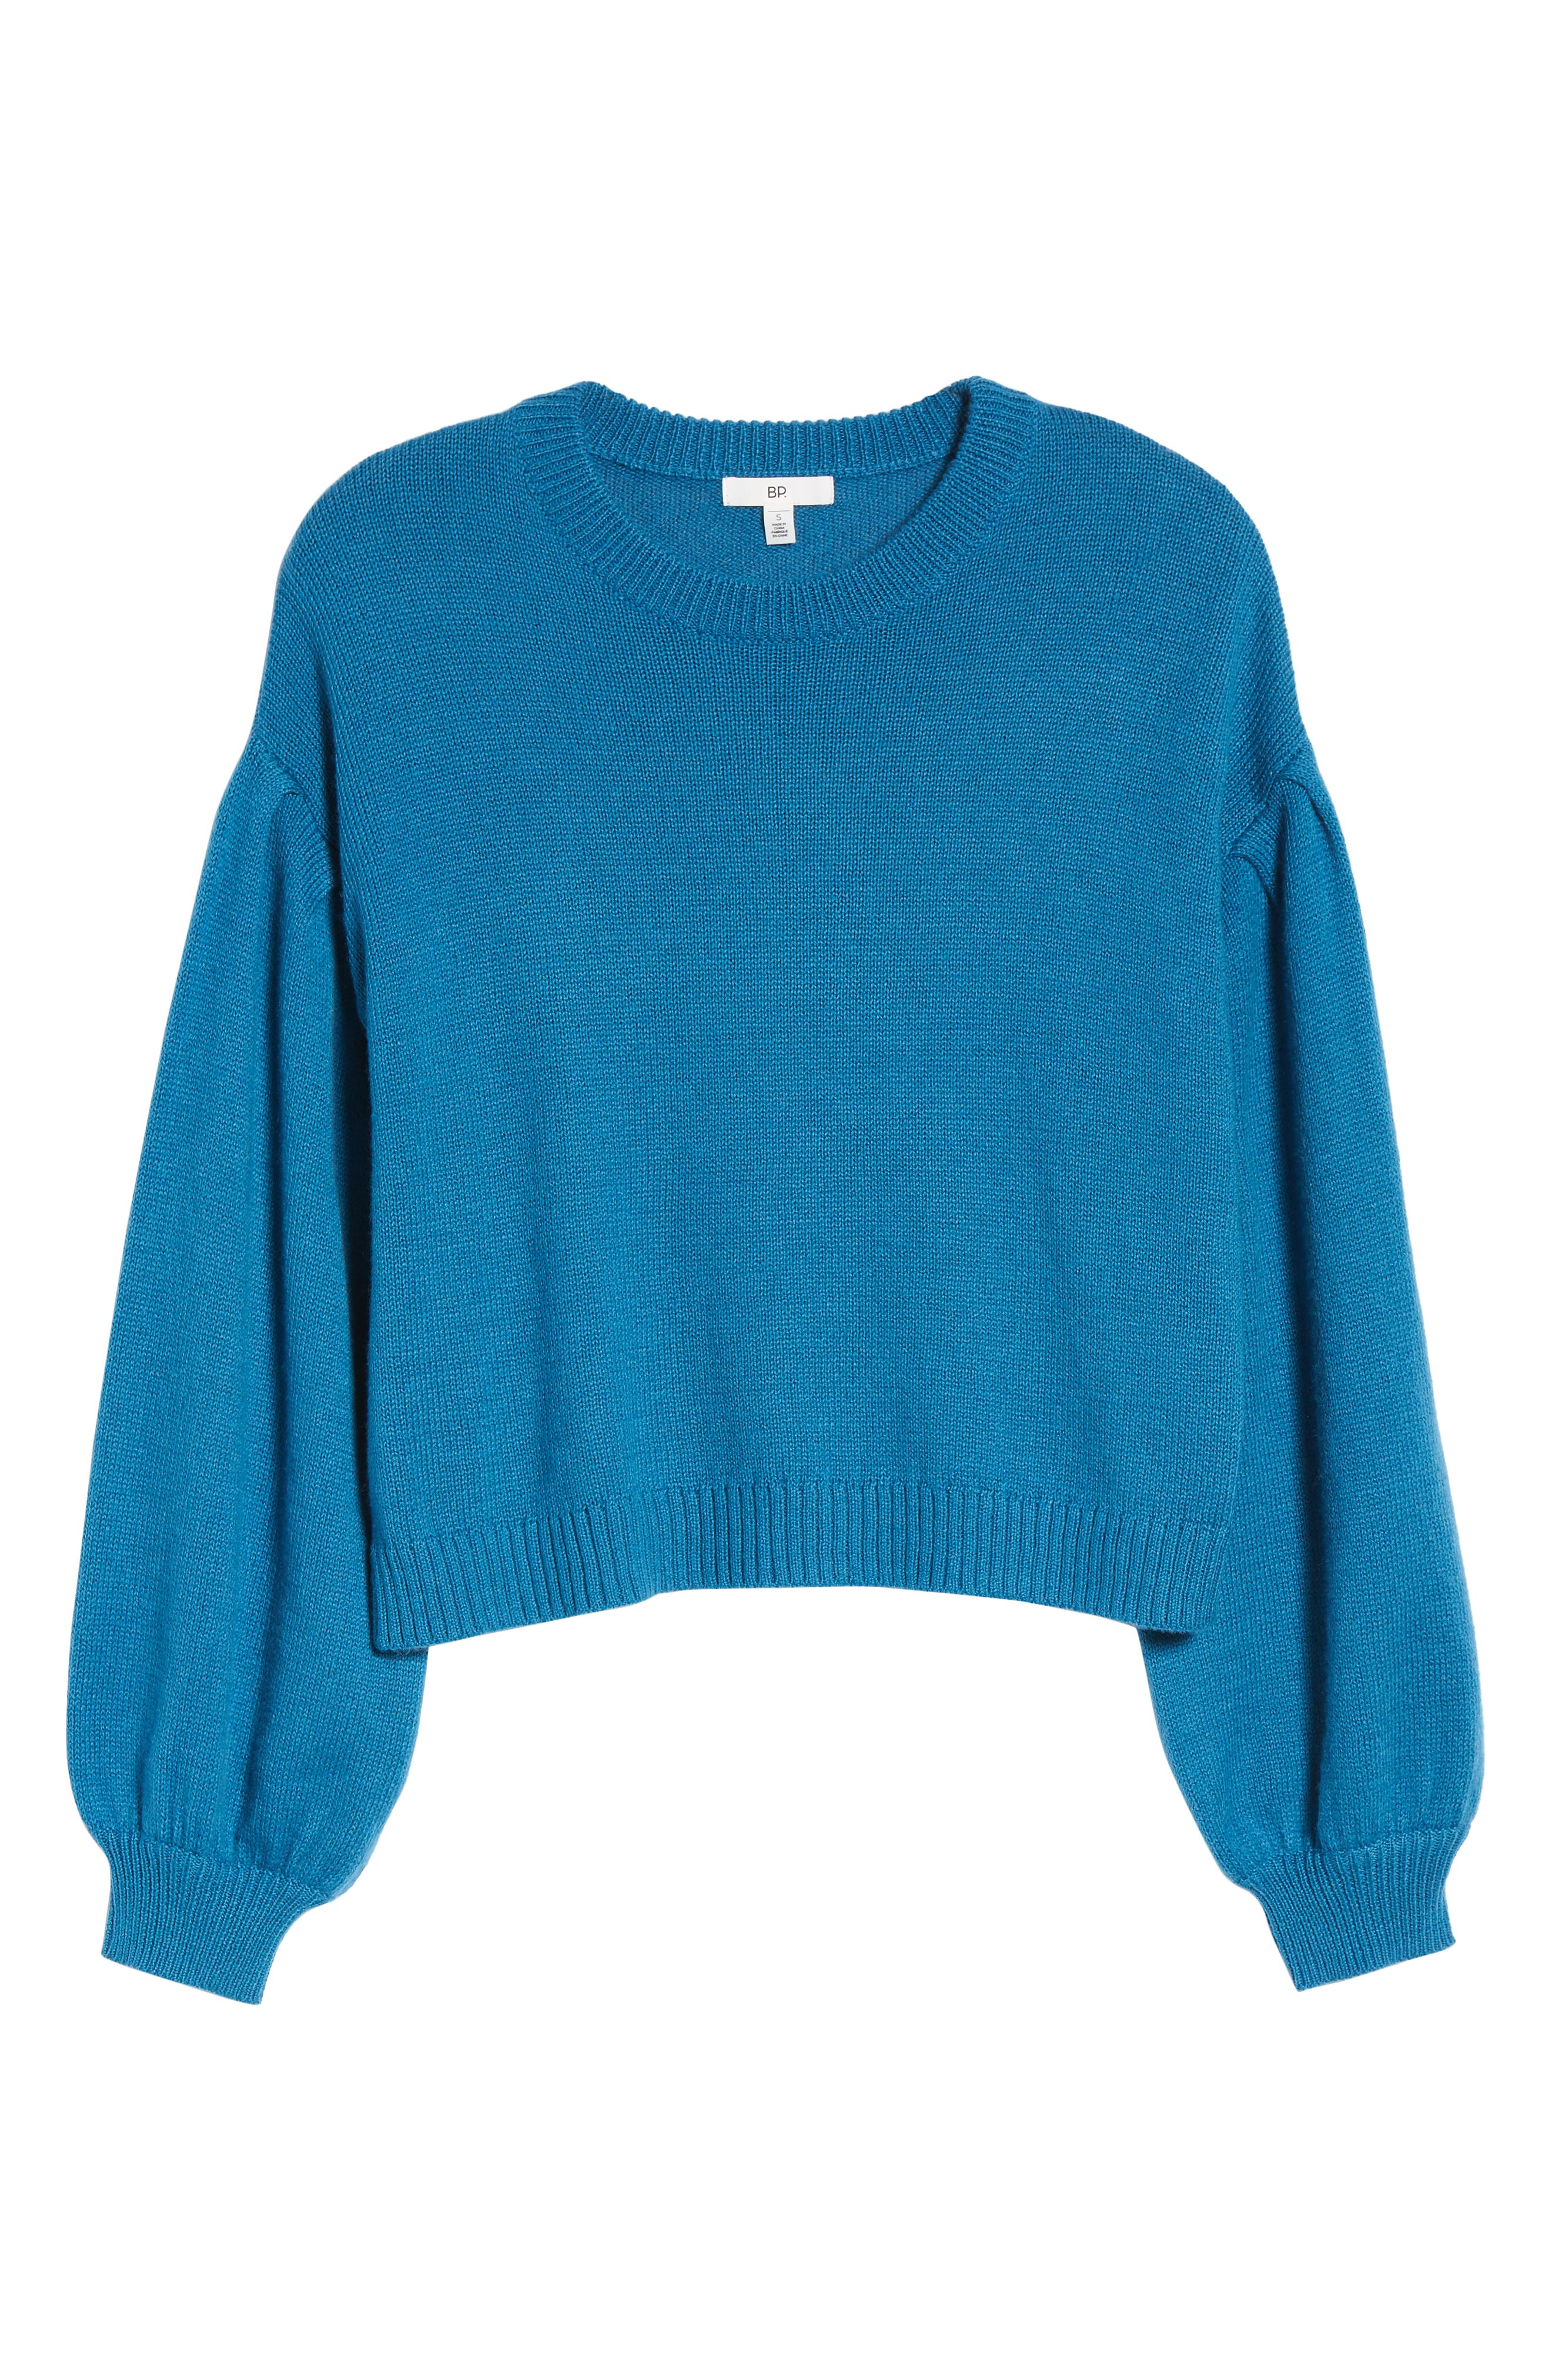 Blouson Sleeve Sweater,                             Alternate thumbnail 6, color,                             TEAL SAPPHIRE